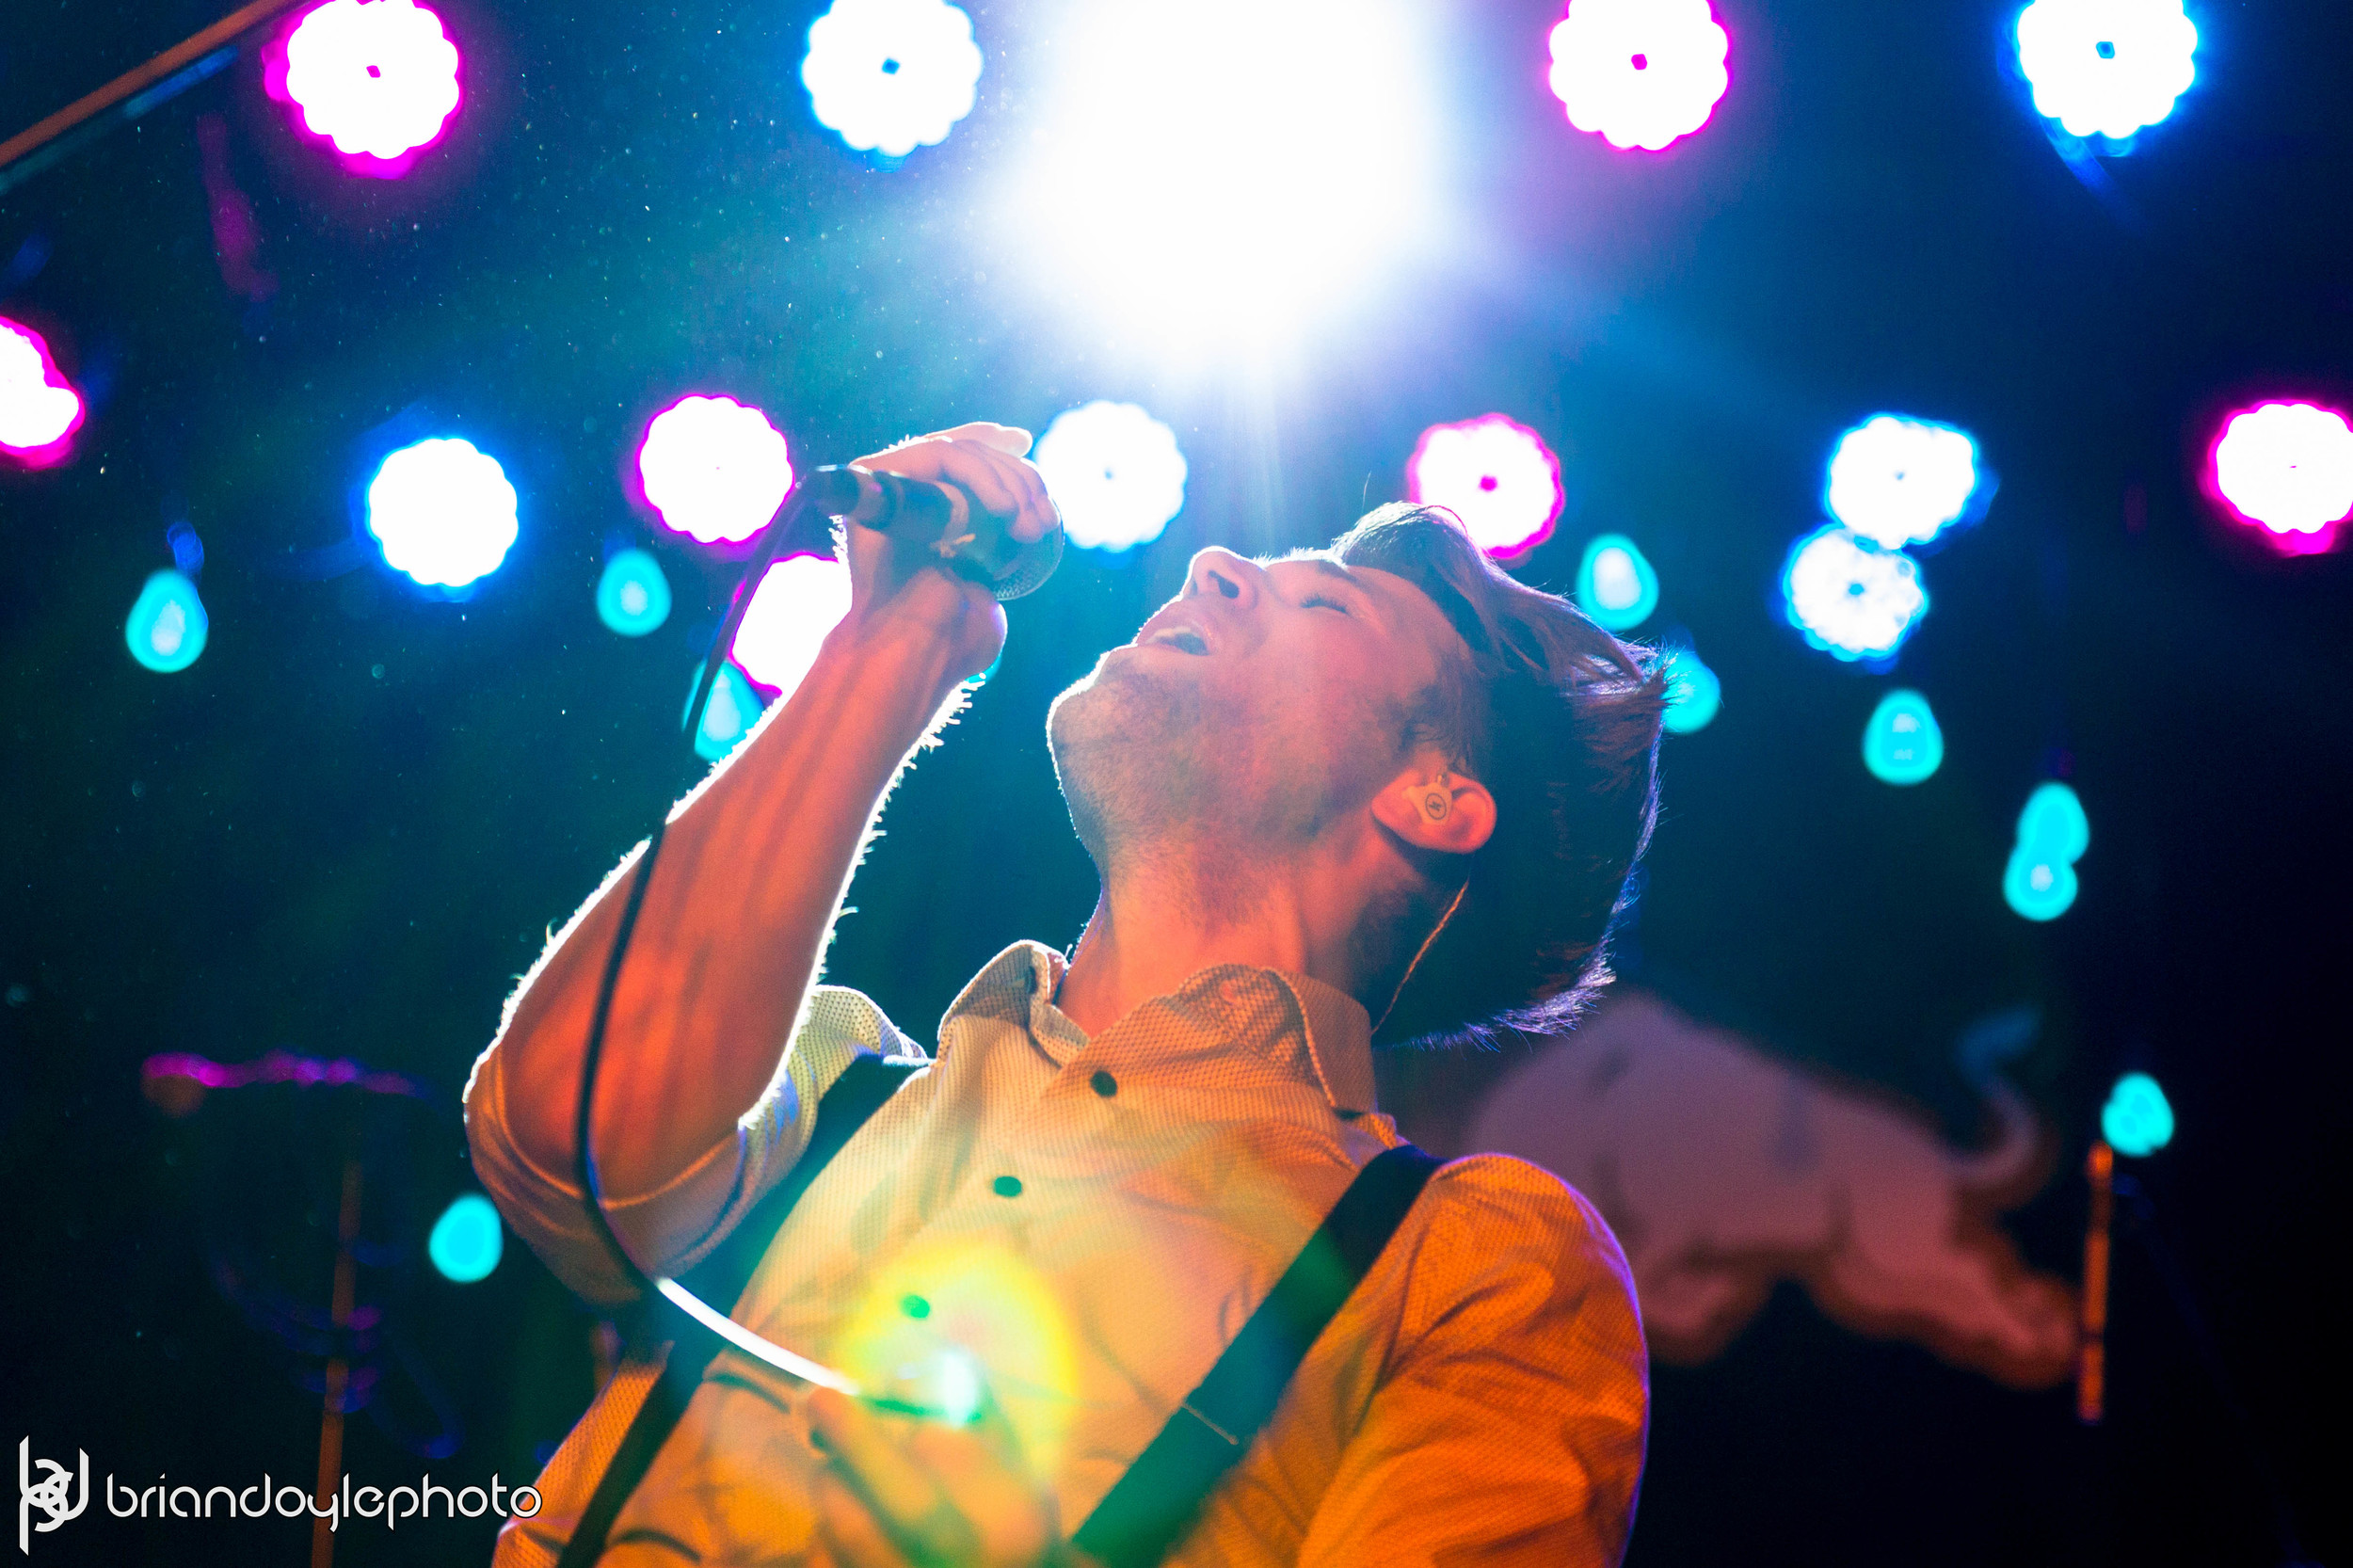 Red Bull - MS MR, Feathers, Electric Sons @ The Roxy 2014.11.02 -26.jpg